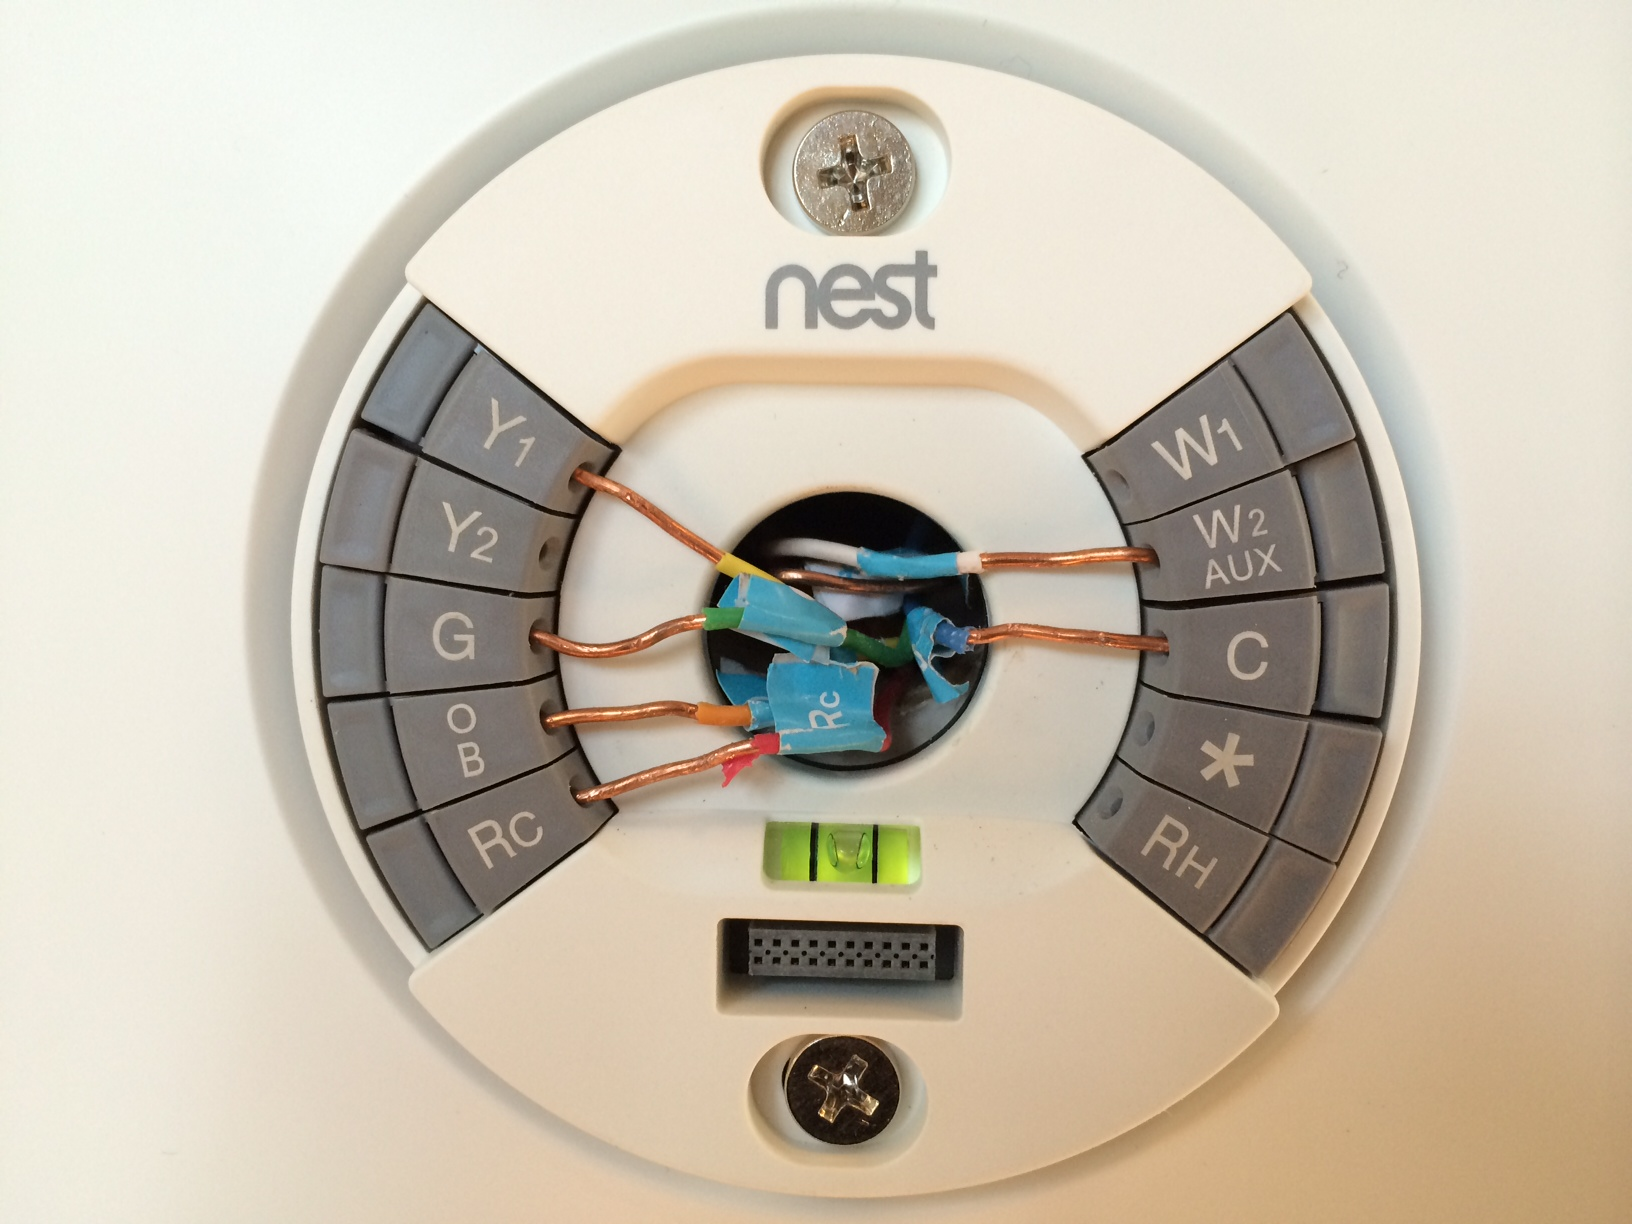 WRG-4671] Nest Thermostat For Radiant Heating Wiring Diagrams on